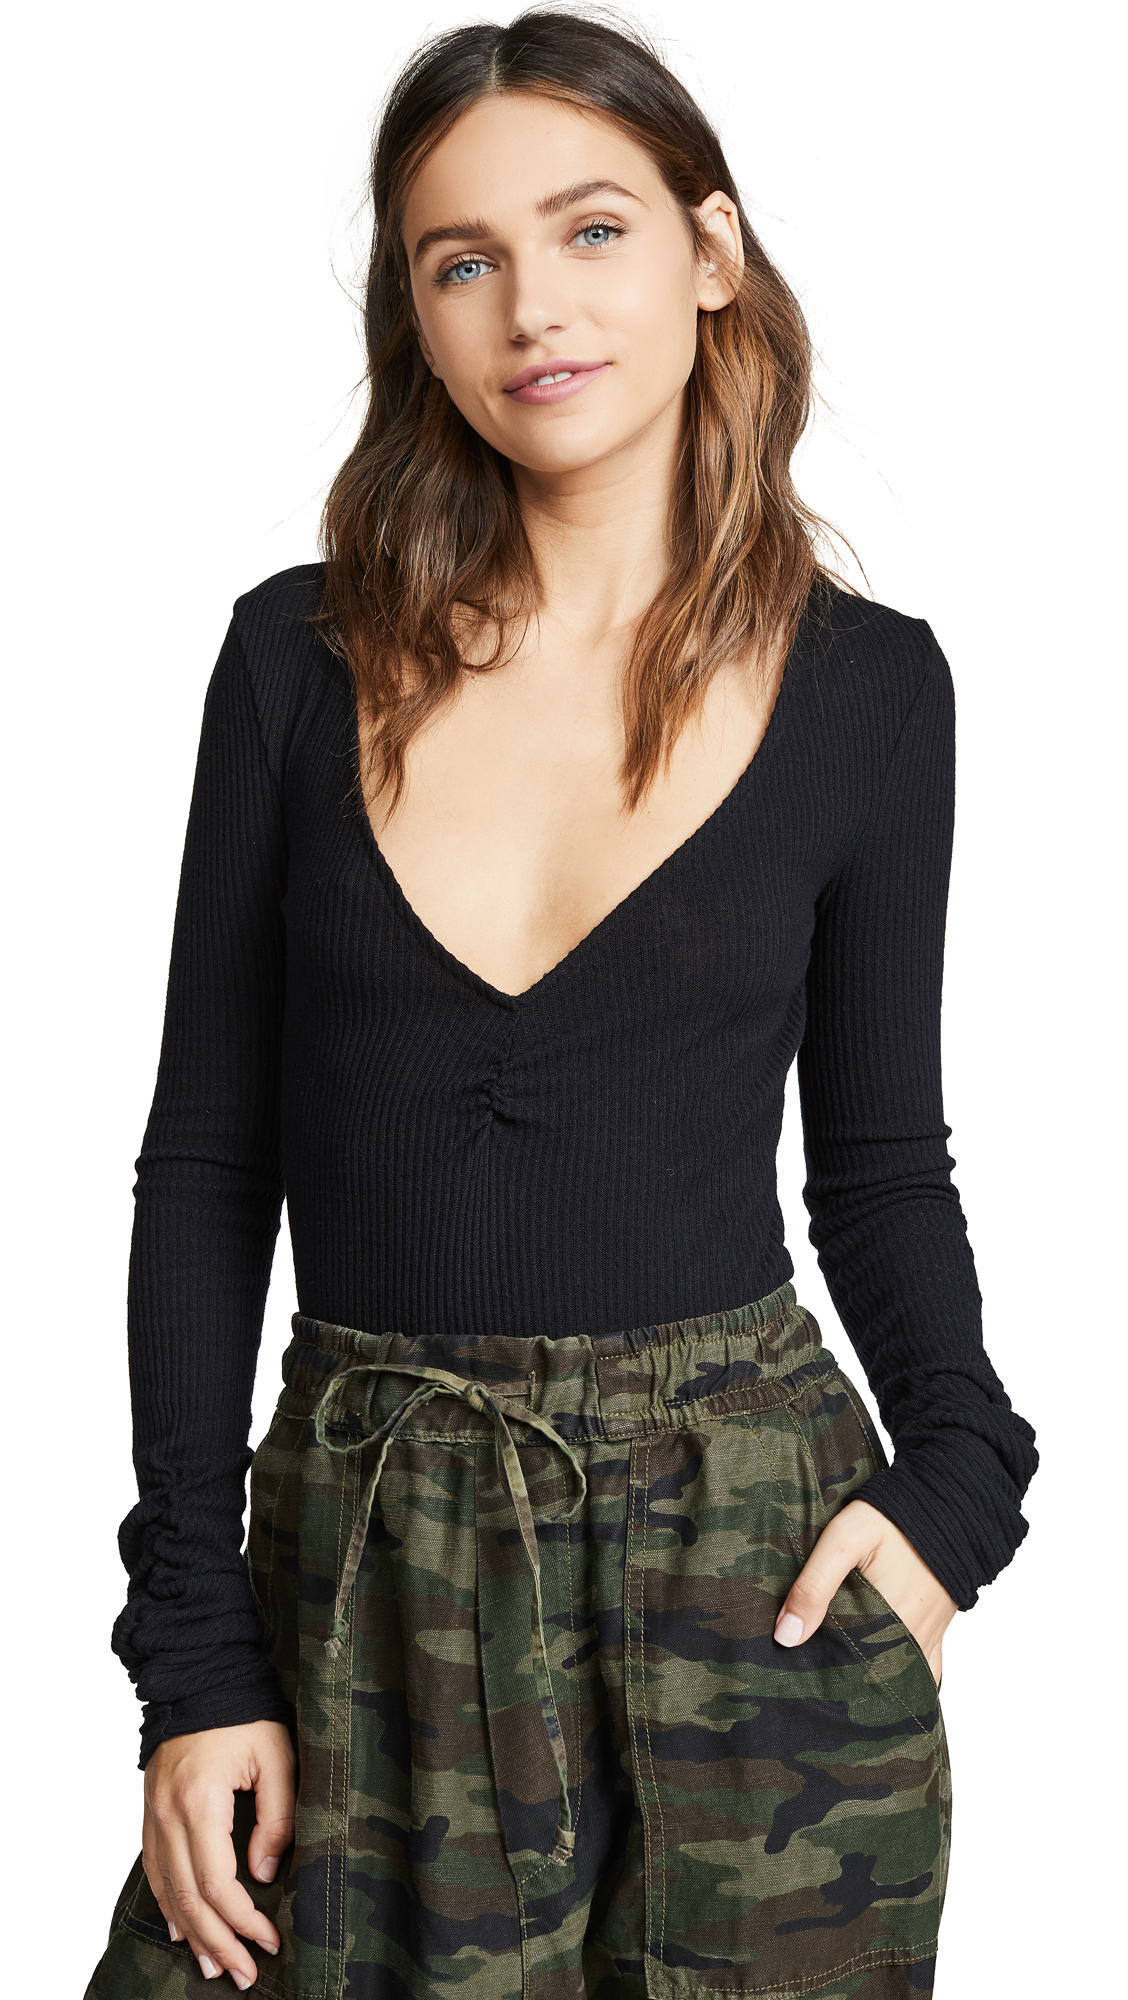 Free People Cozy Up With Me Bodysuit - Black